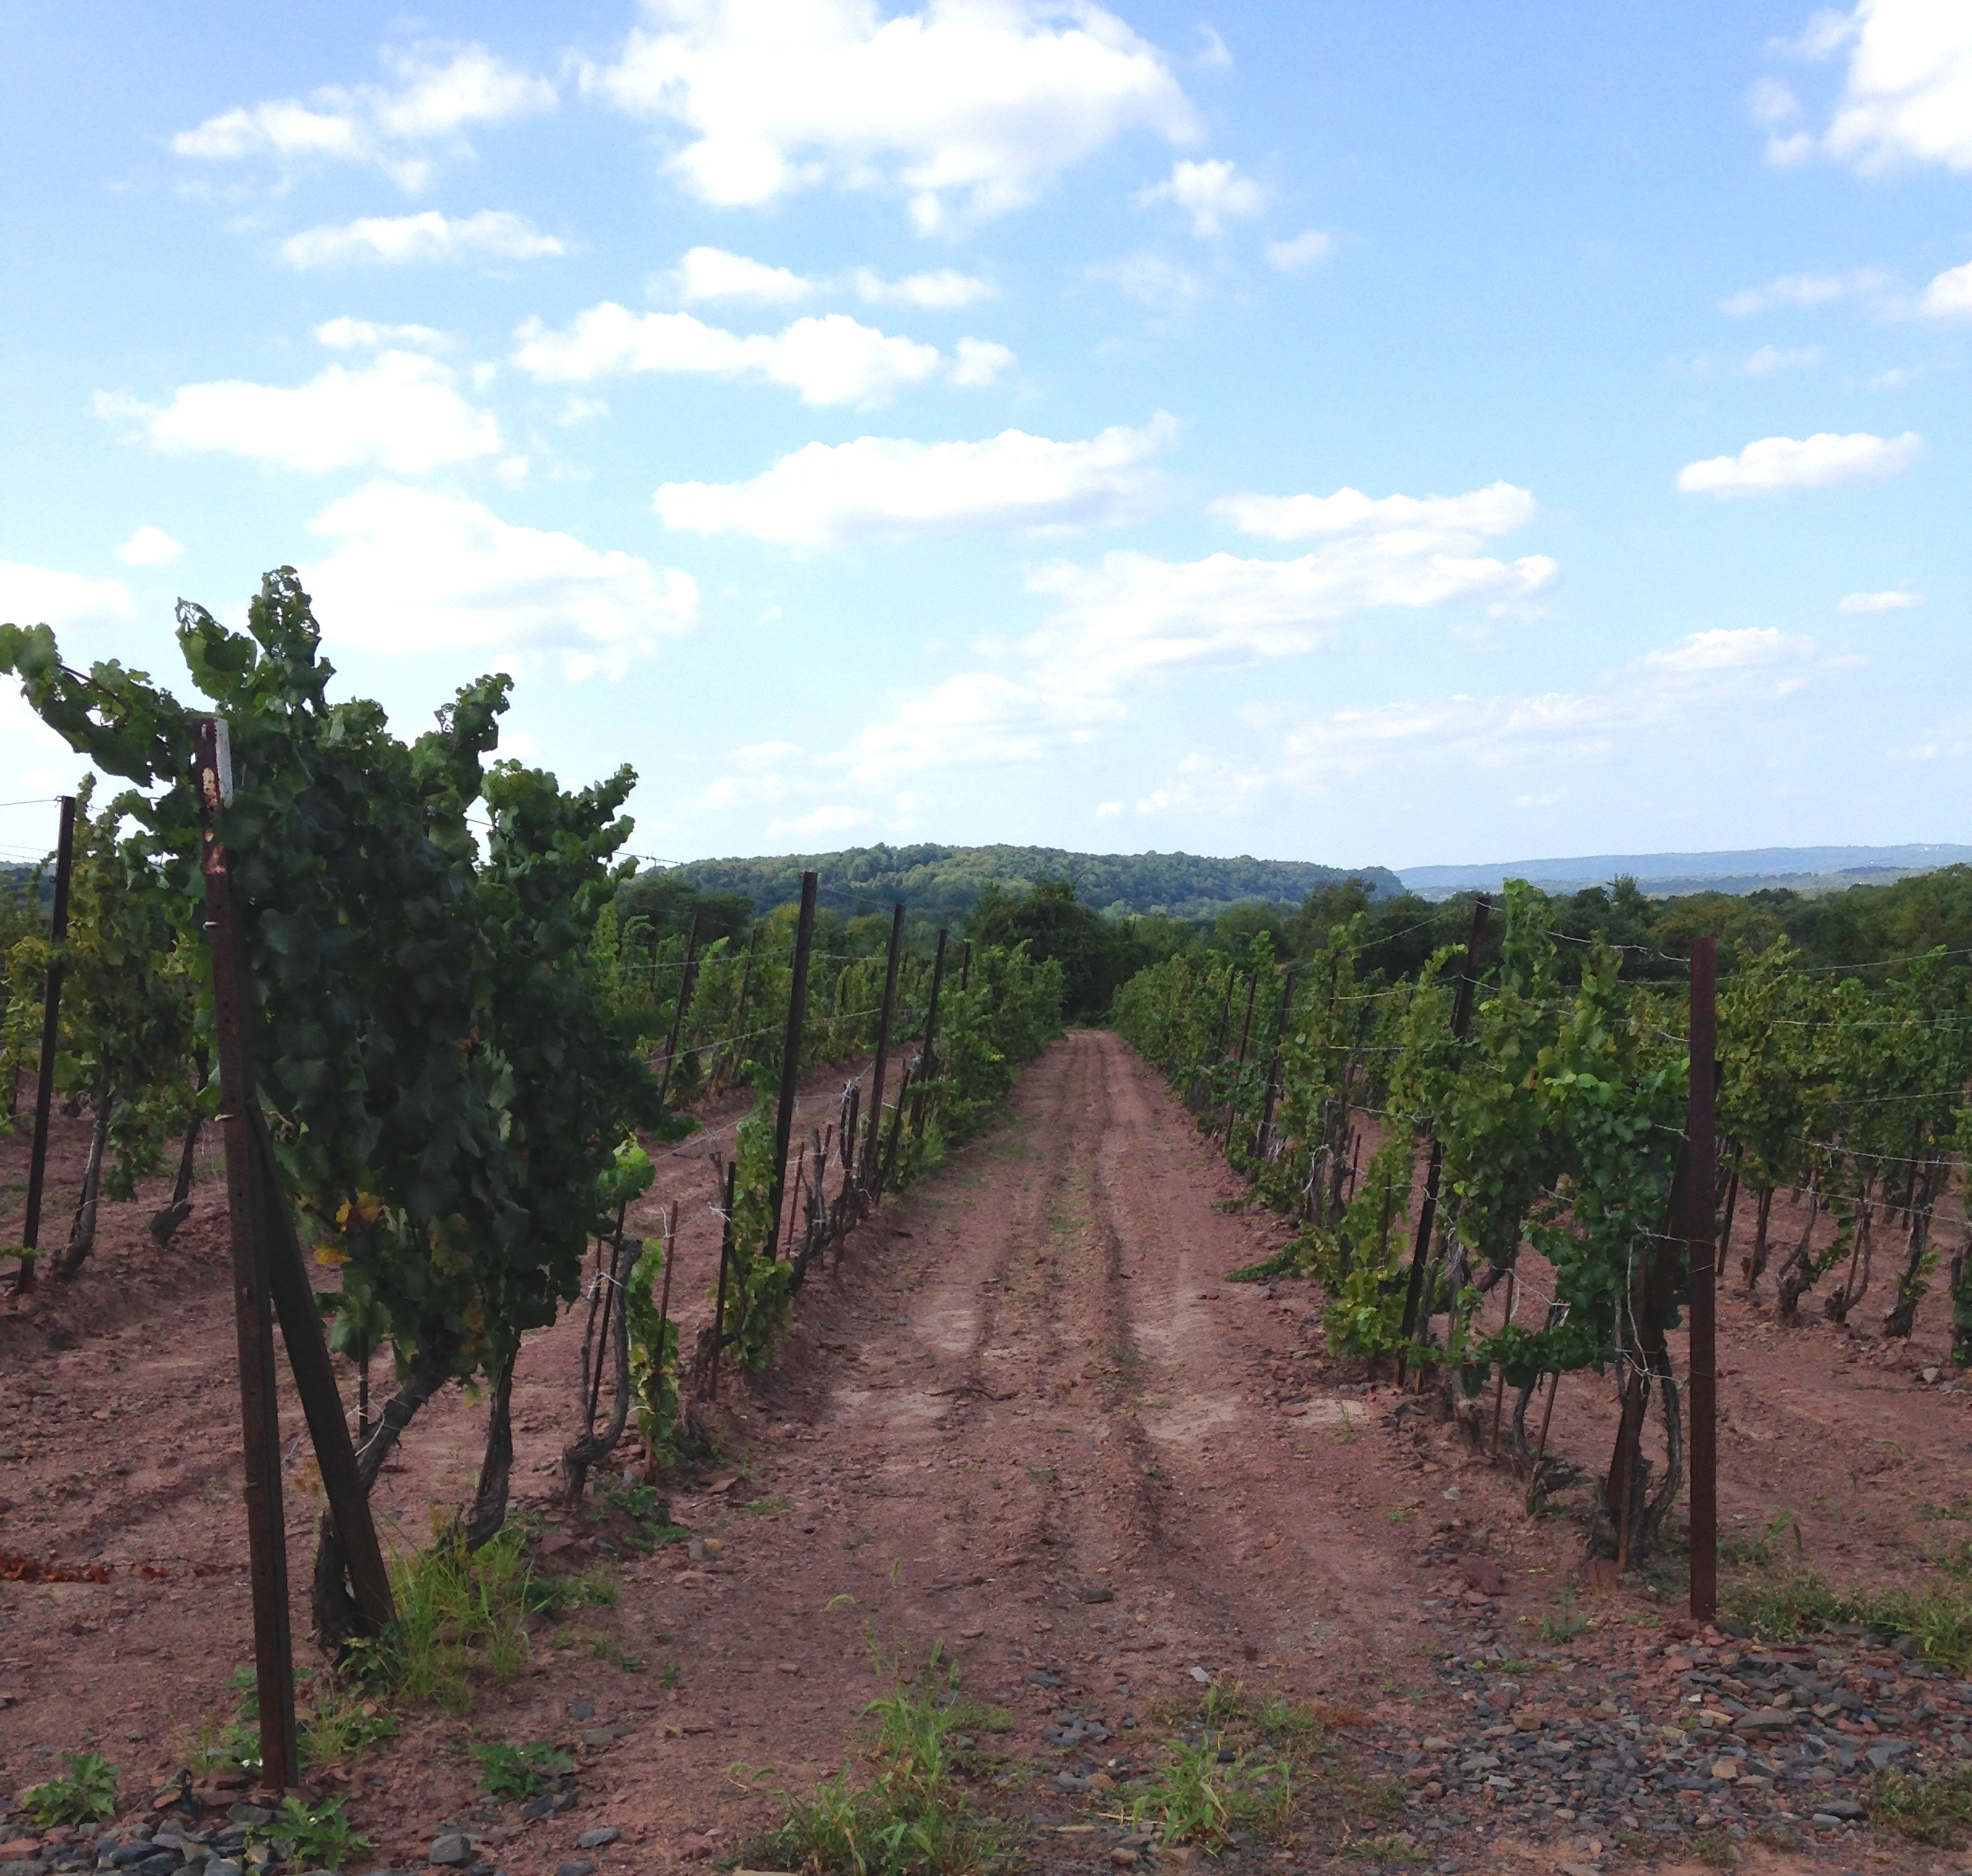 Sand Castle Winery grows 4 kinds of grapes